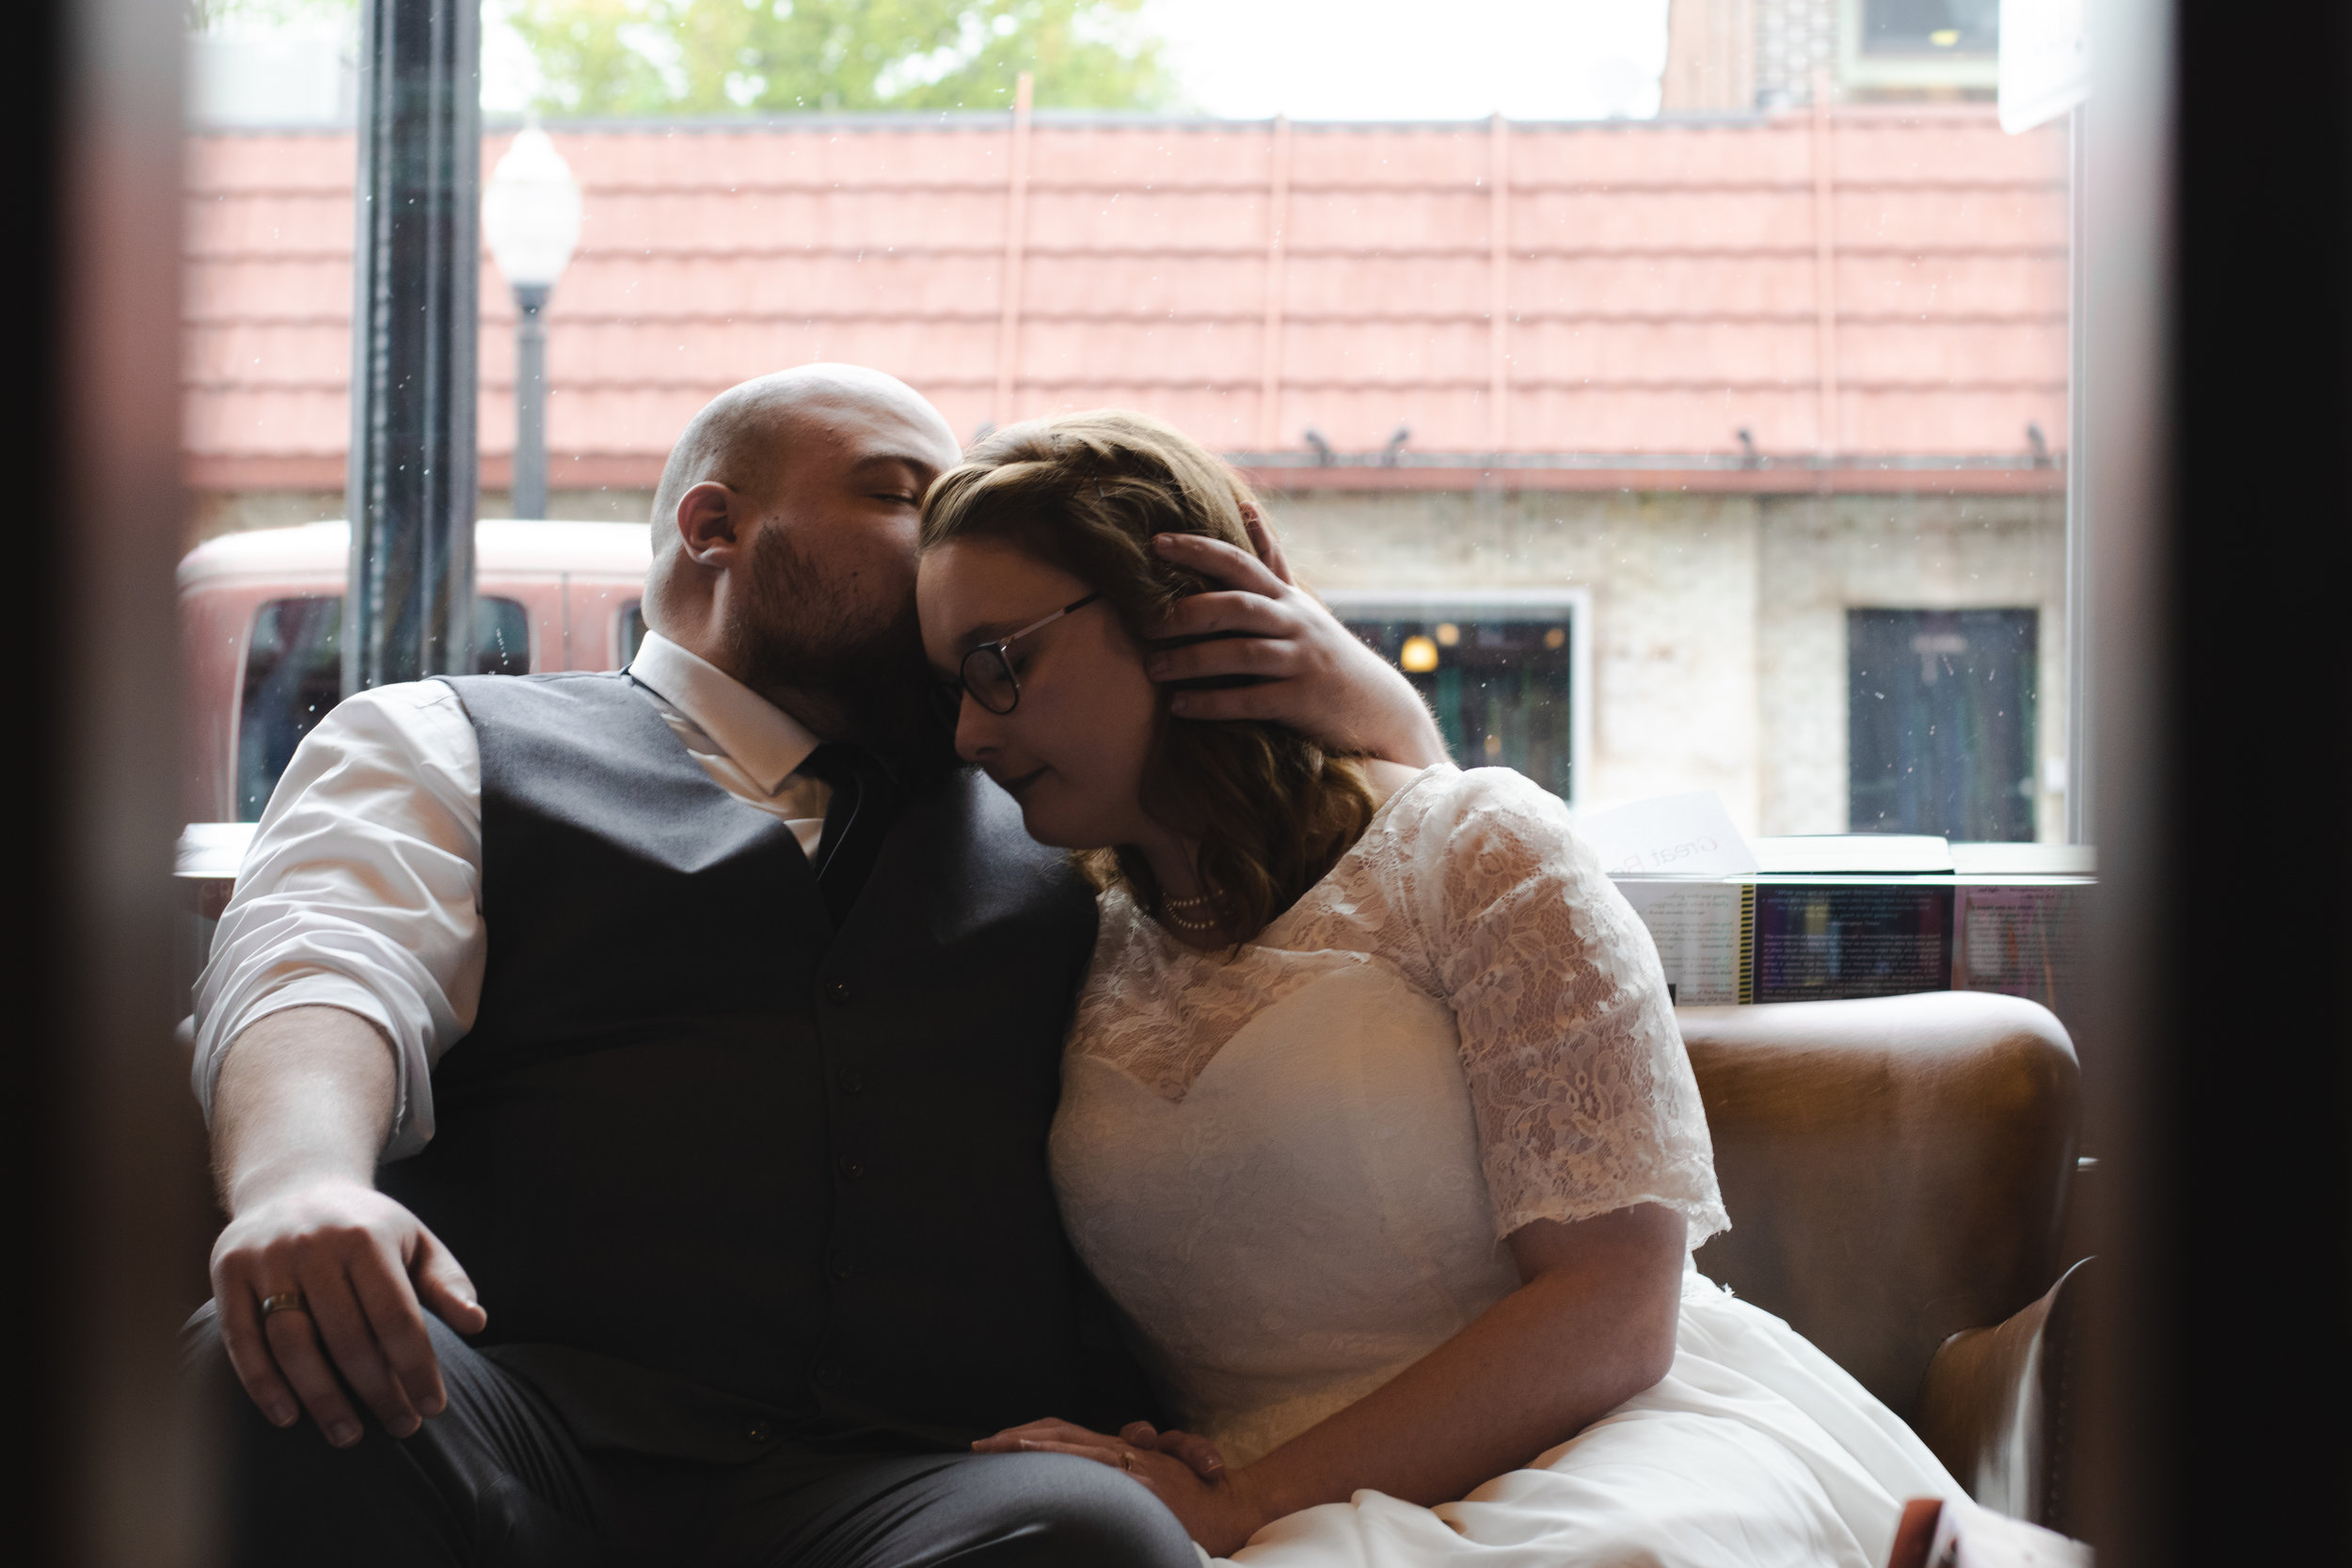 Jessica Abbiati - Shannon is a quality photographer who couples professionalism with fun and creativity. She made my husband and I feel comfortable in front of the camera (which is a total miracle) and she delivered beautiful images that we will cherish for a lifetime.